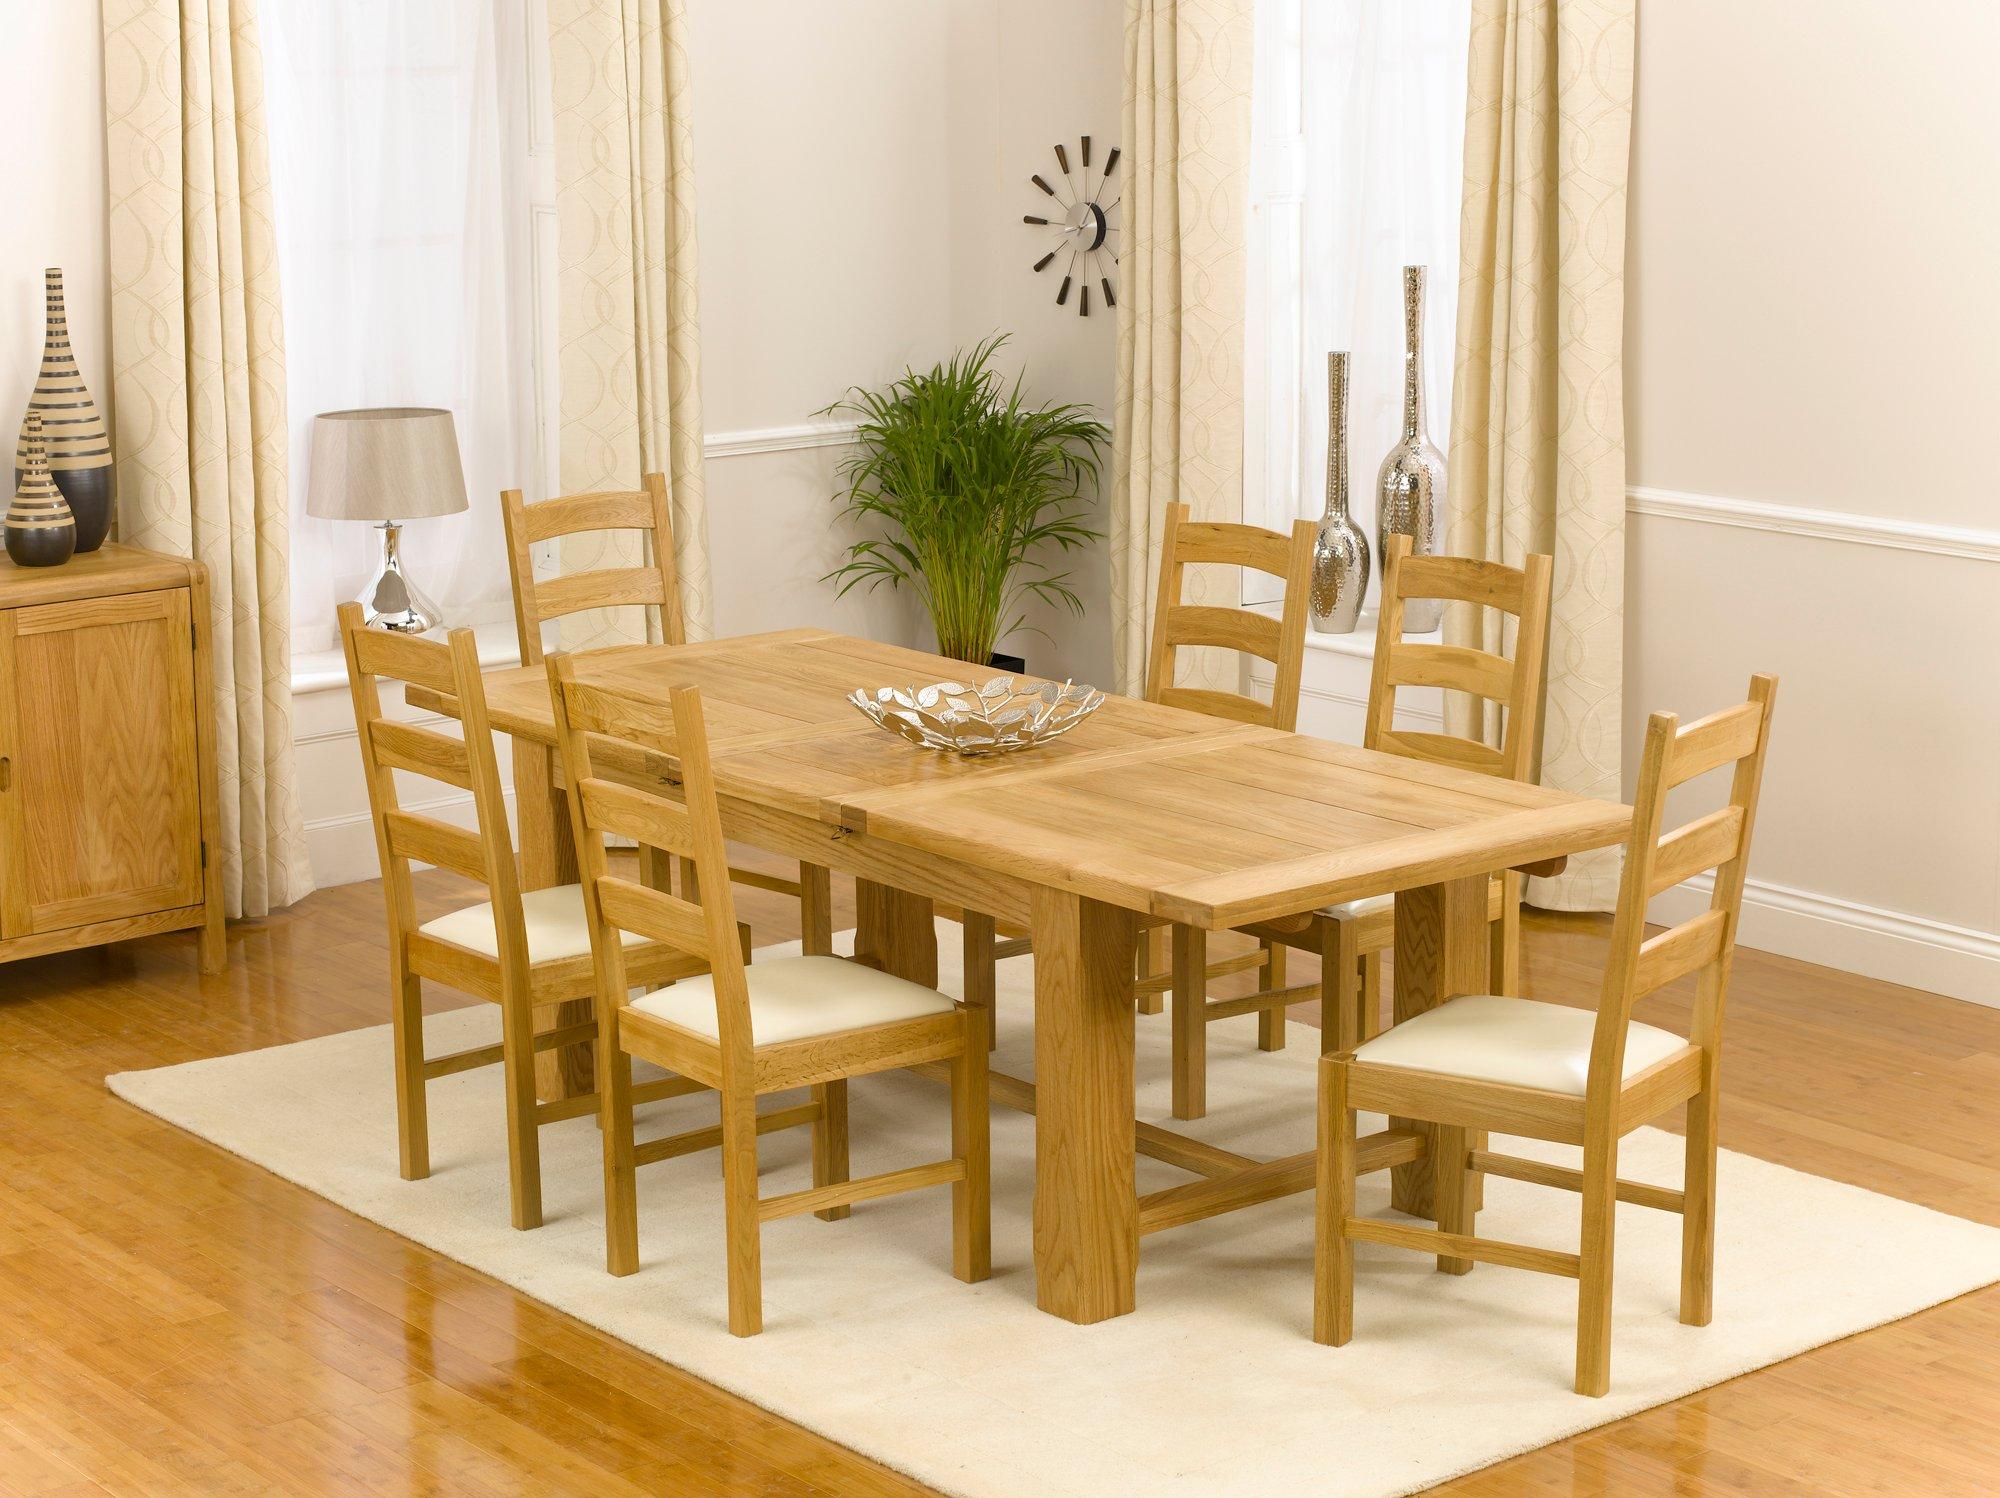 Dining Table Dining Table Sets Leicester : Guernsey DT 6 vanco from diningtabletoday.blogspot.com size 2000 x 1498 jpeg 1659kB